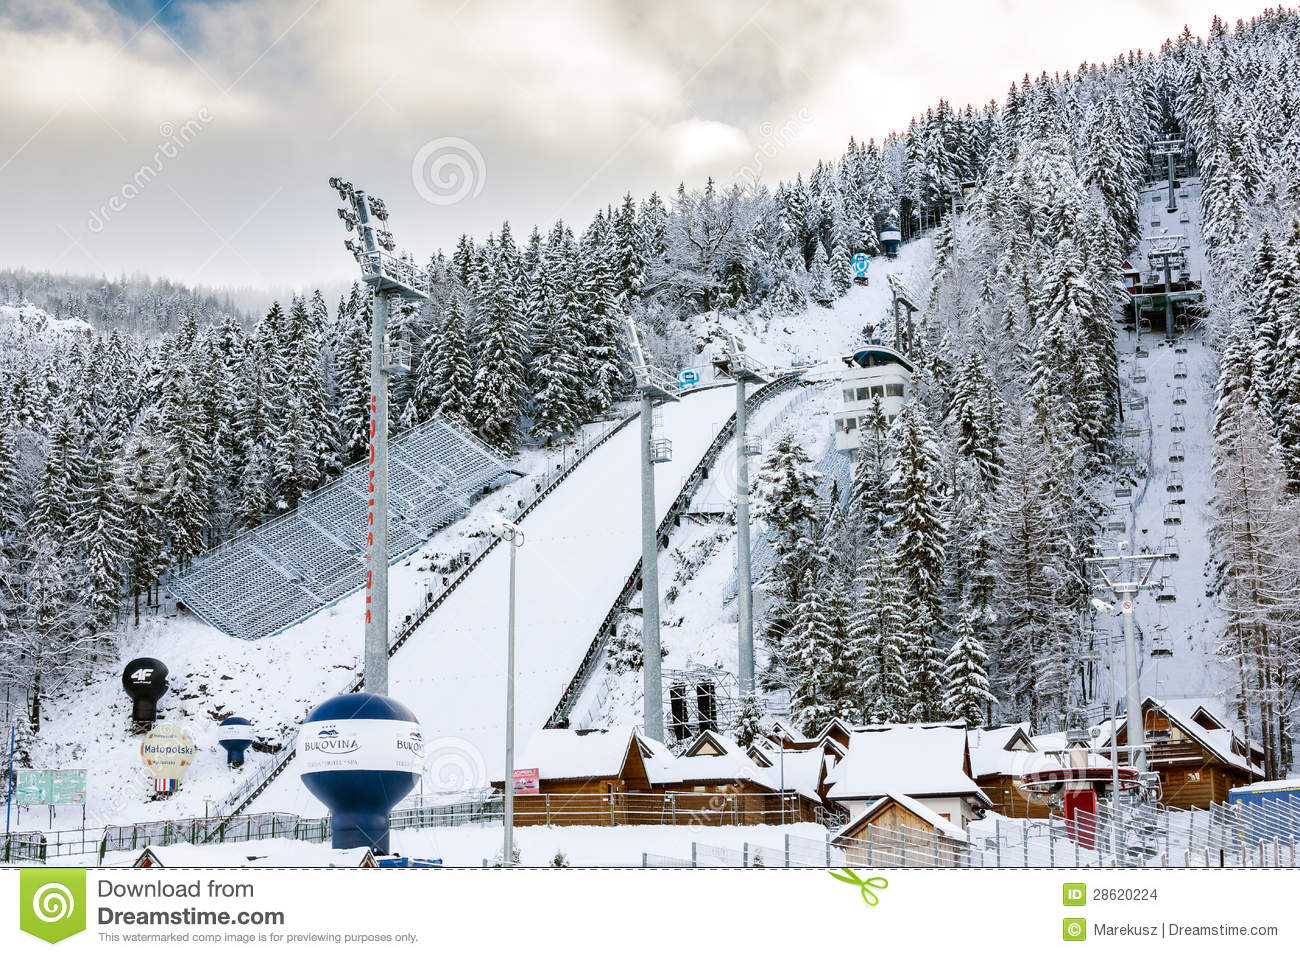 Ski Jump In Zakopane, Poland Editorial Stock Image - Image: 28620224